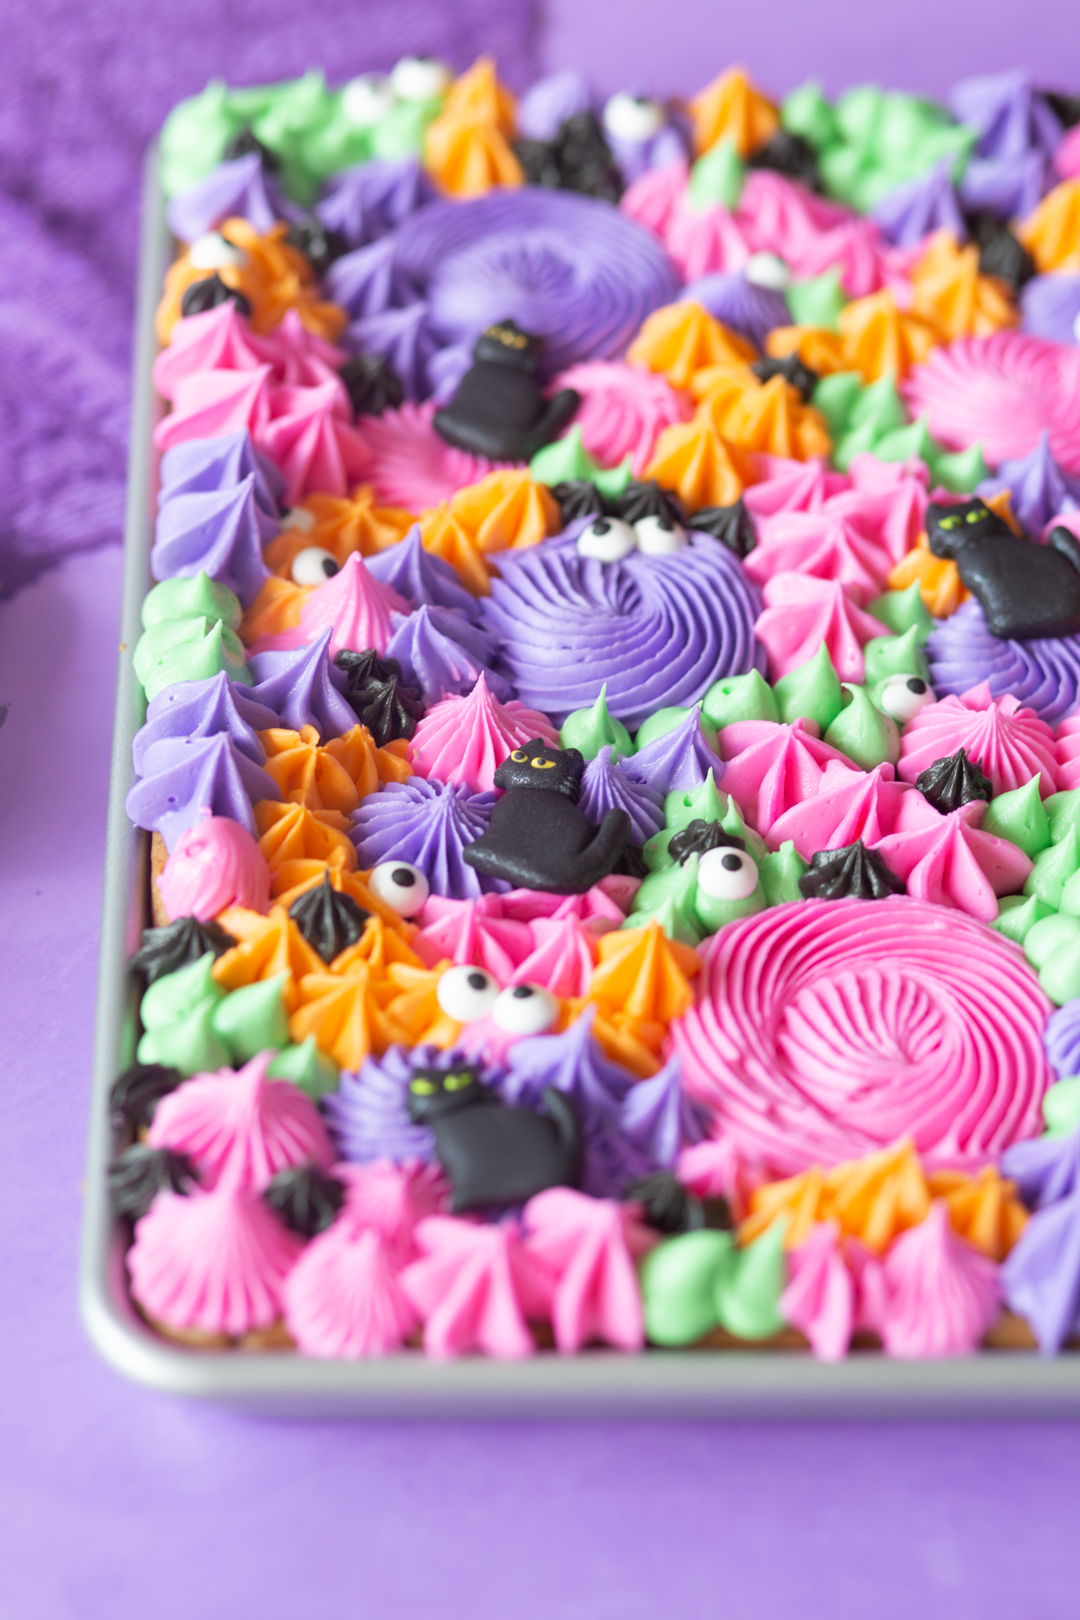 close up view of sheet pan cookies loaded with colorful buttercream frosting using different piping tips